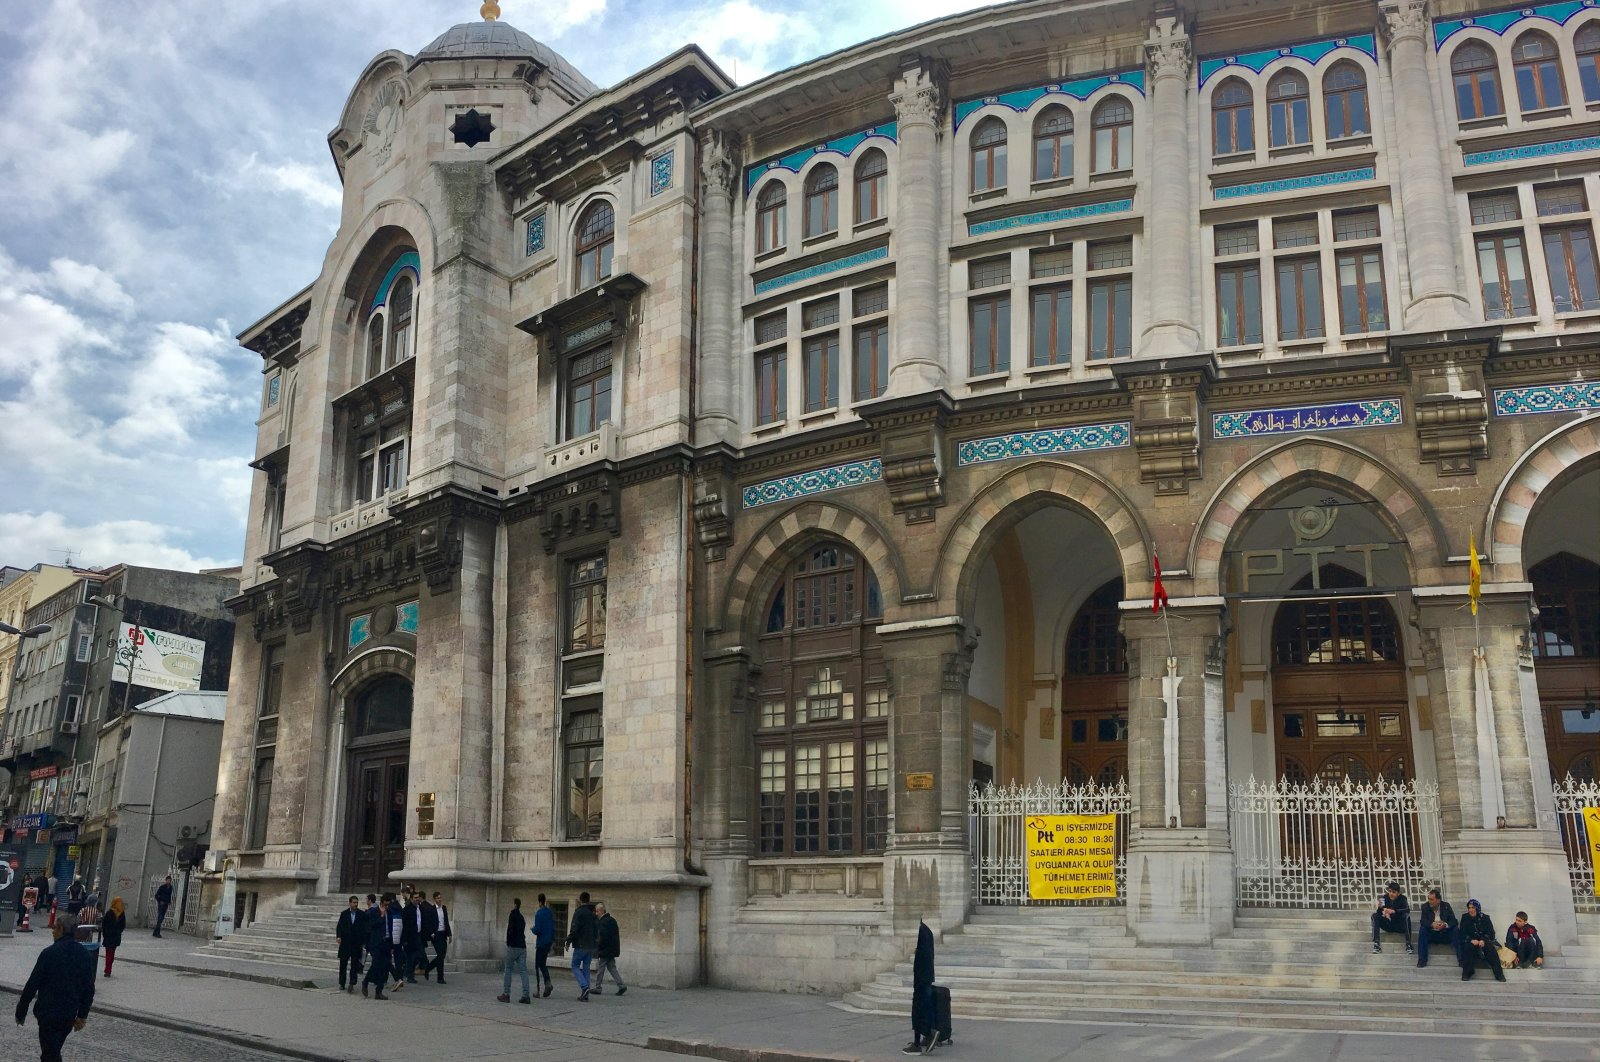 The Grand Post Office is an office building for Turkish postal services located at the Sirkeci quarter of the Fatih district in Istanbul, Feb. 19, 2017. (Photo by Shutterstock)